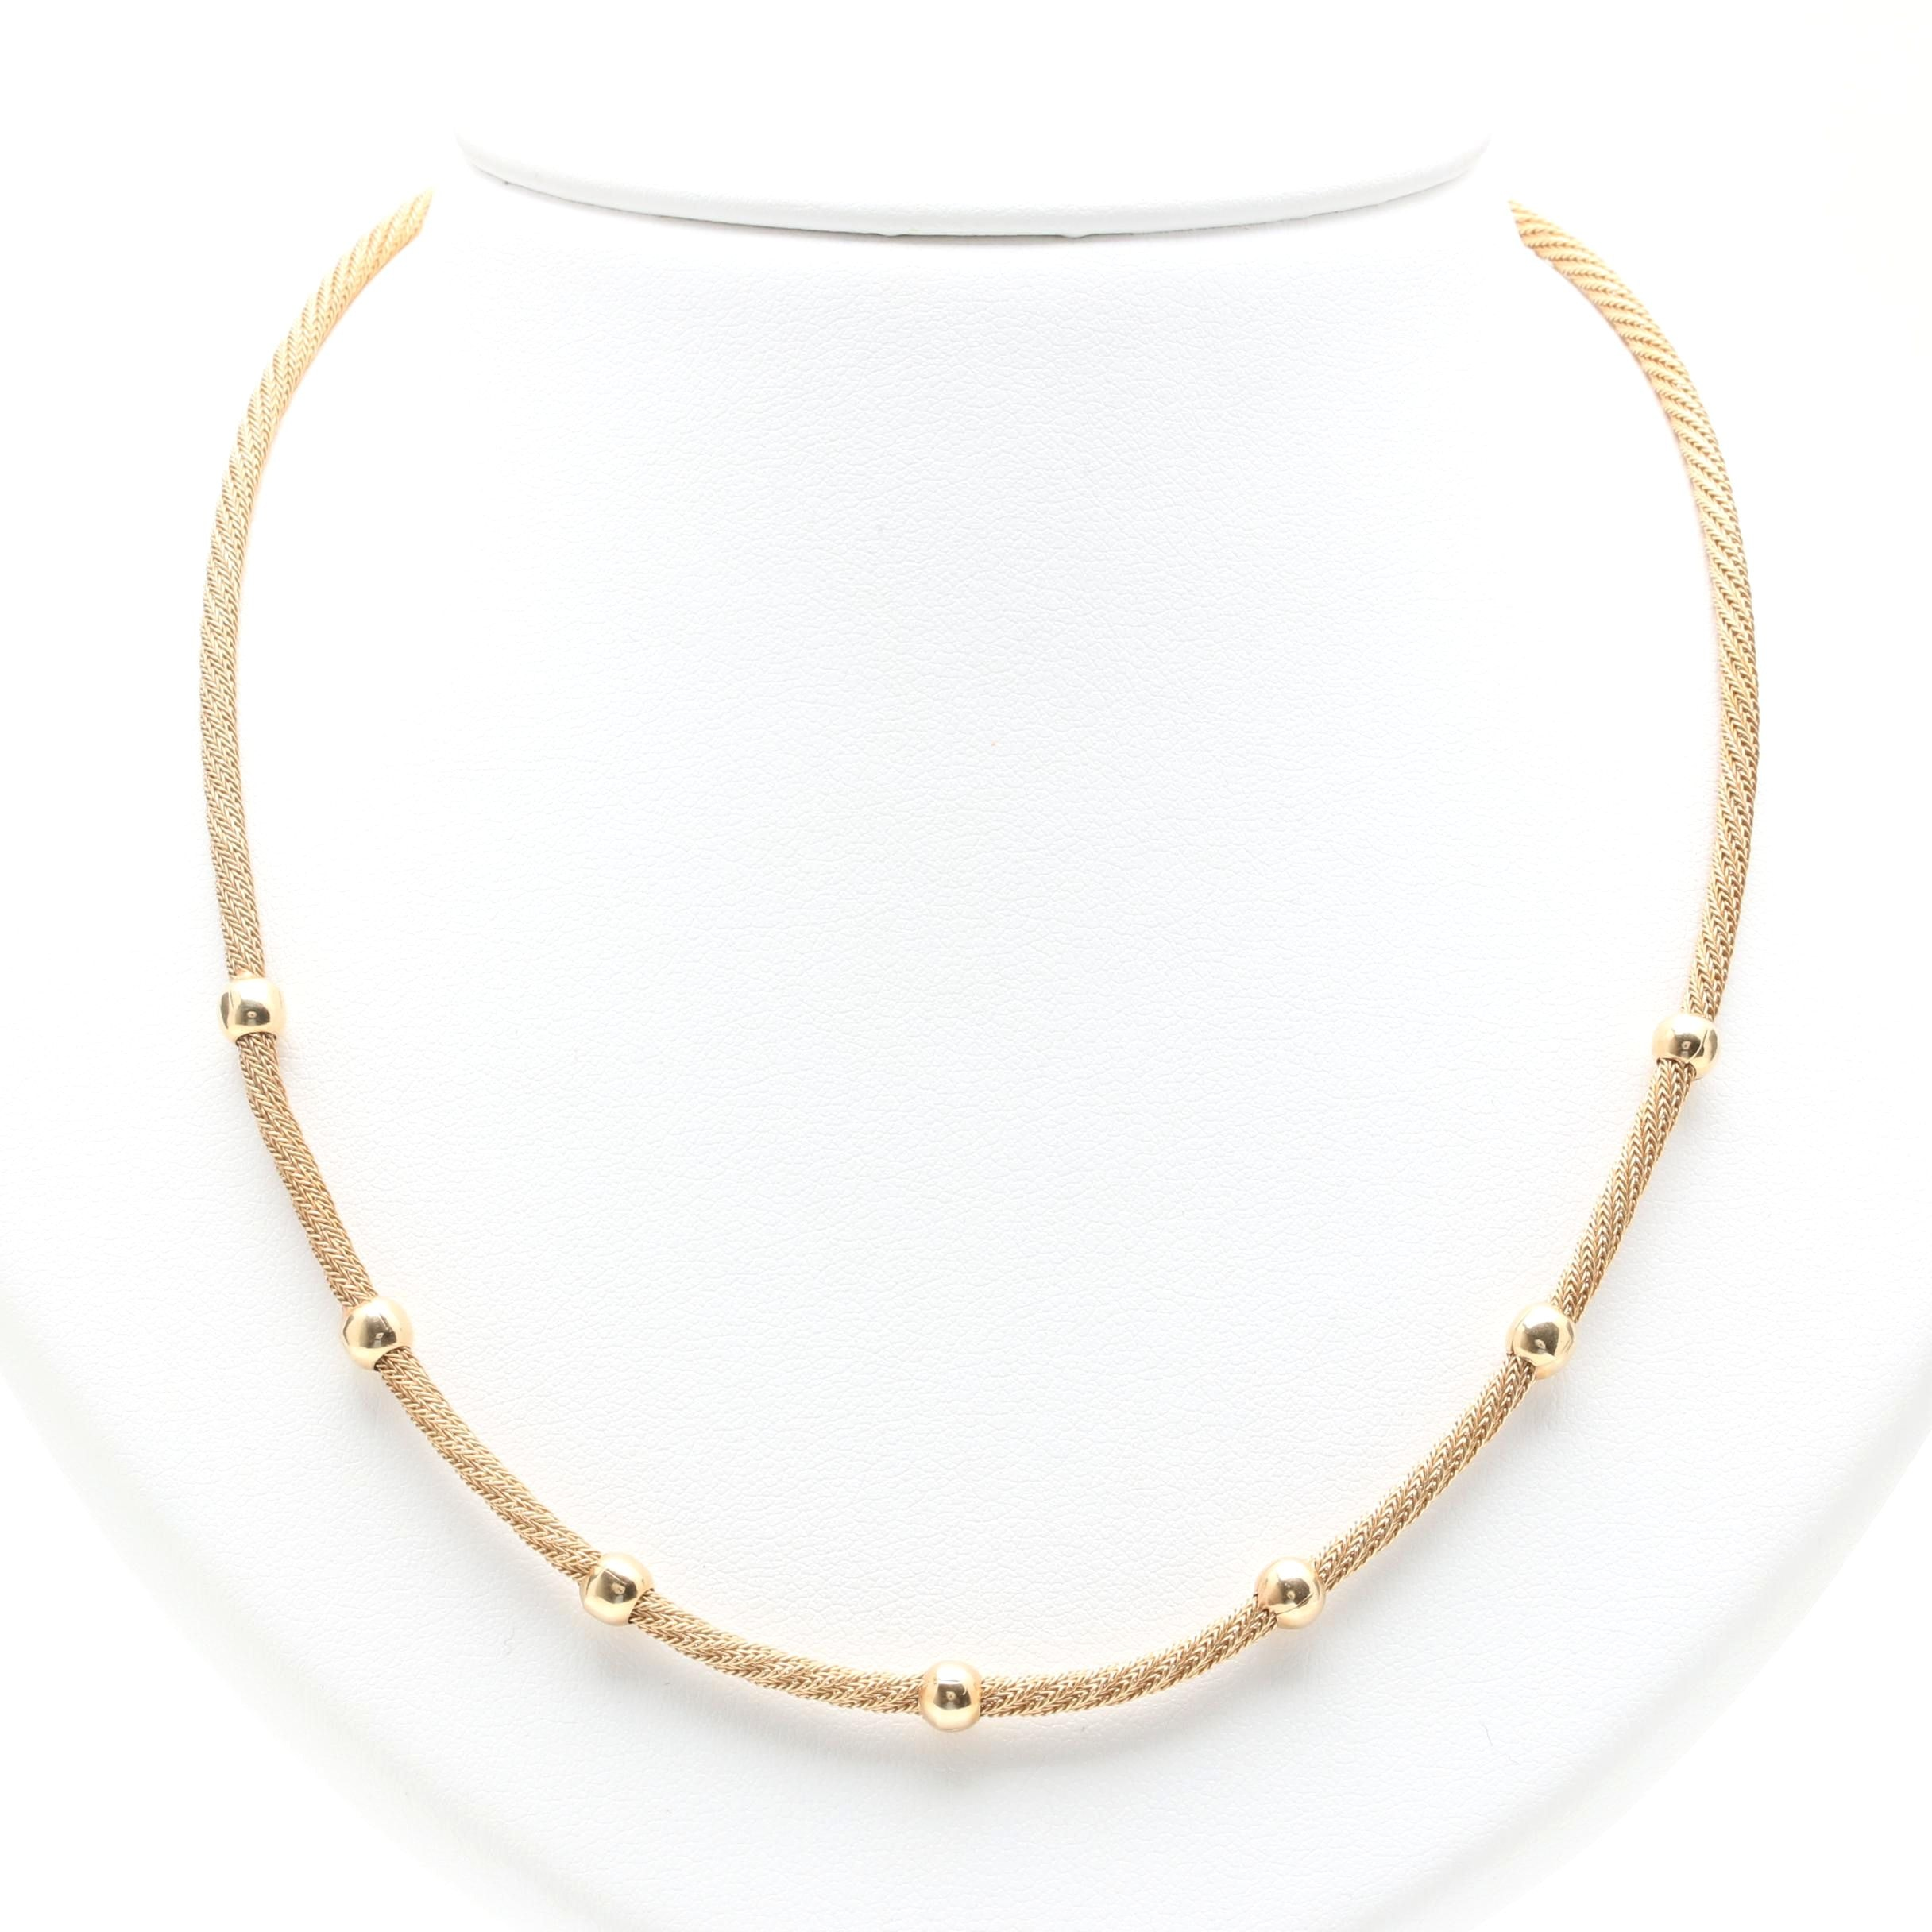 Italian 14K Yellow Gold Station Necklace